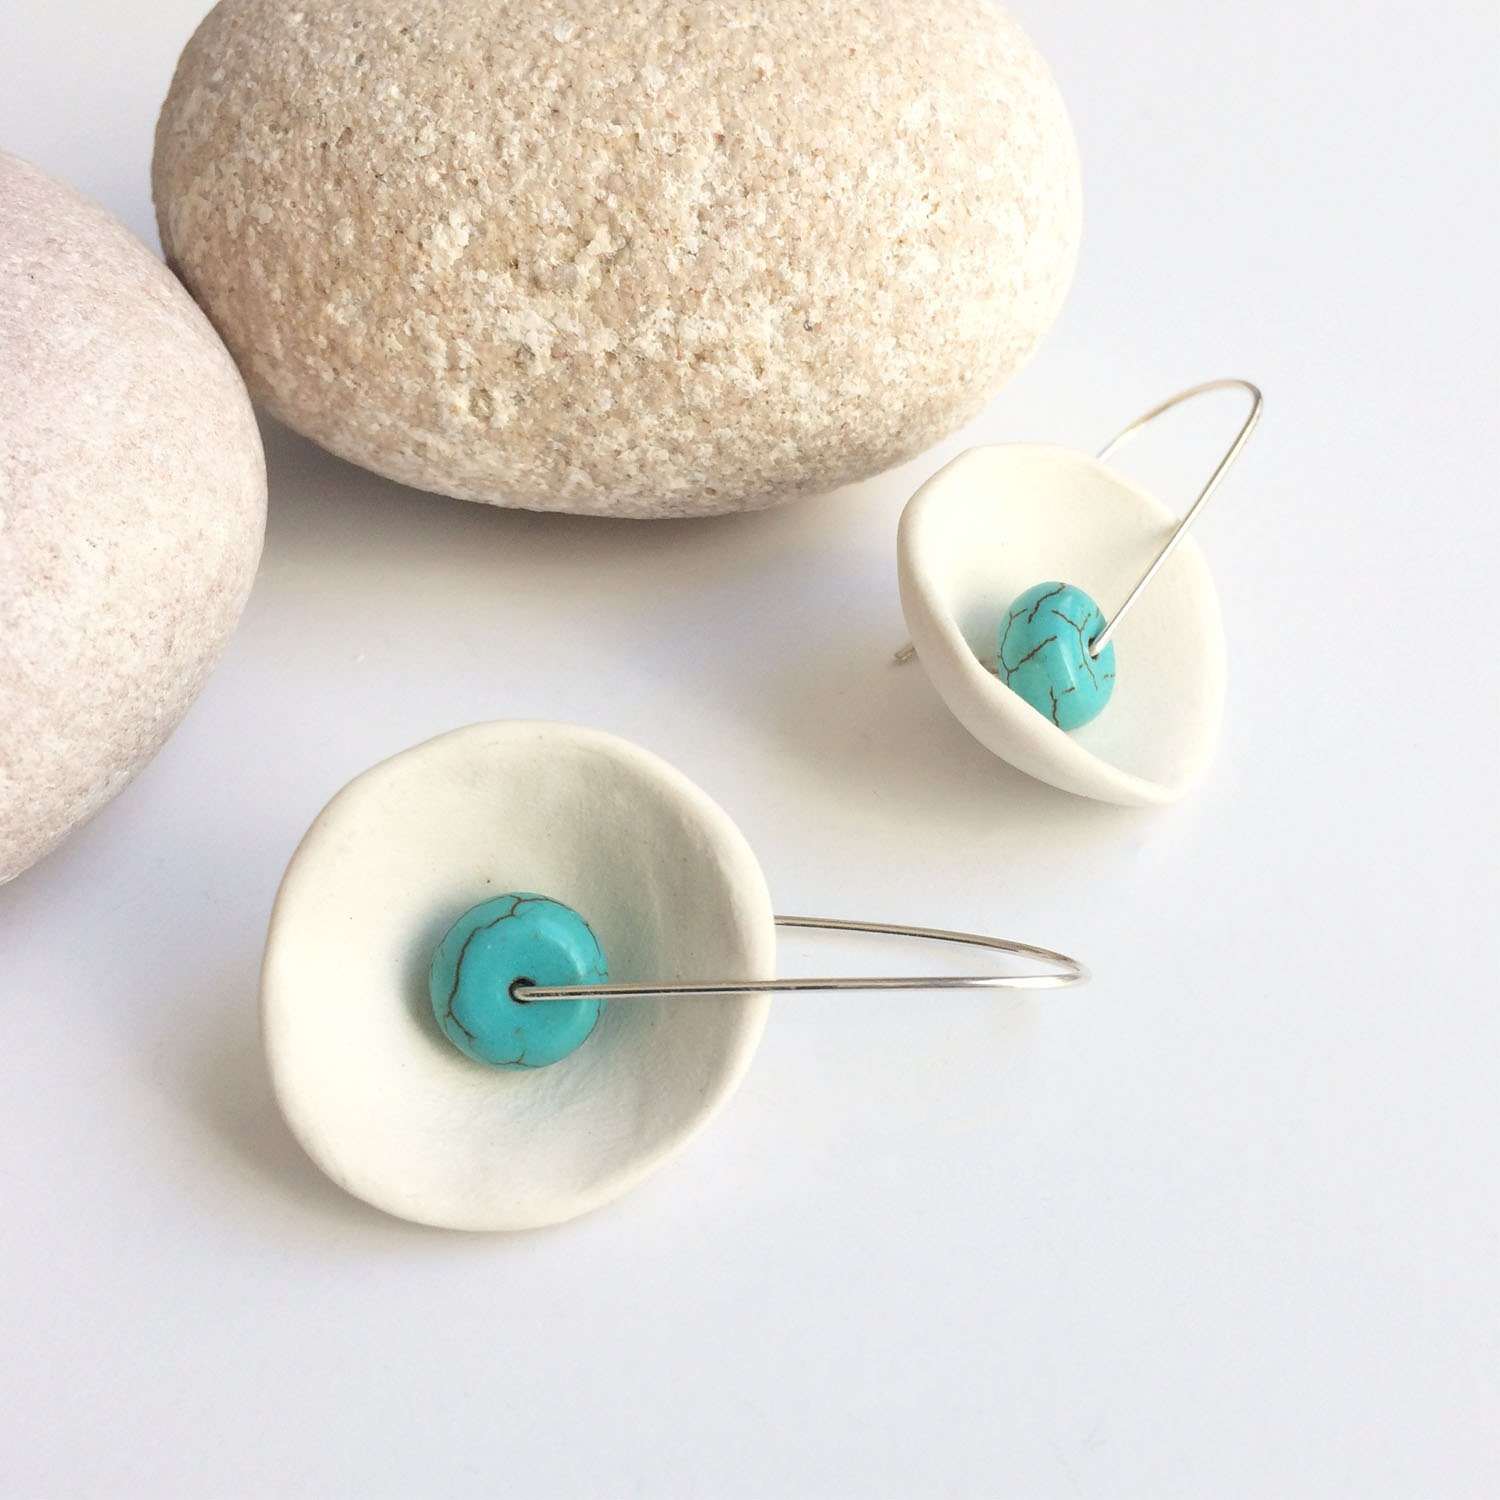 Porcelain and turquoise earrings